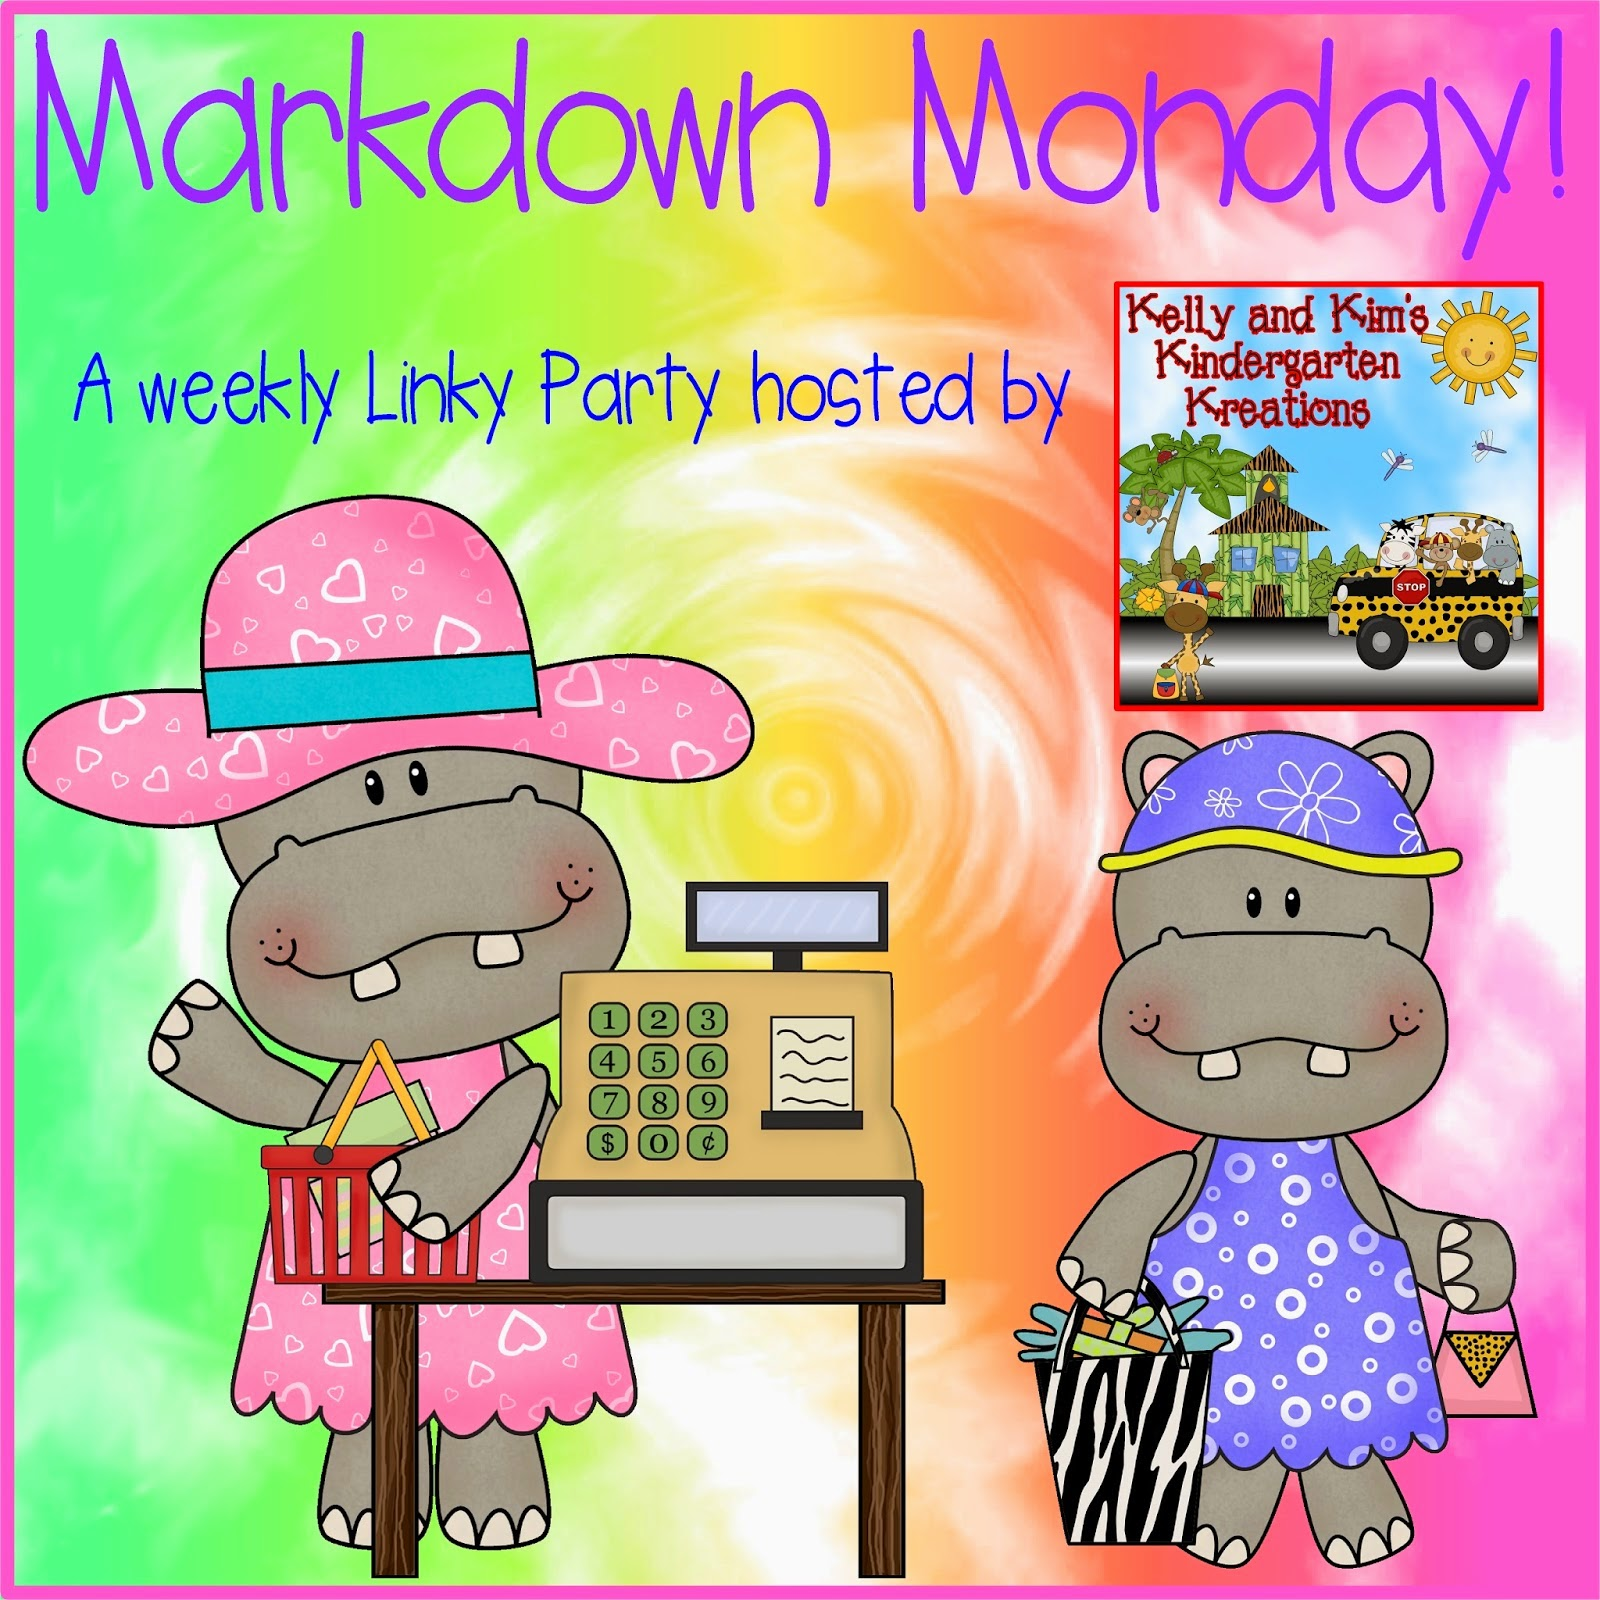 http://kellyandkimskindergarten.blogspot.com/2014/06/markdown-monday-linky-party-featuring.html